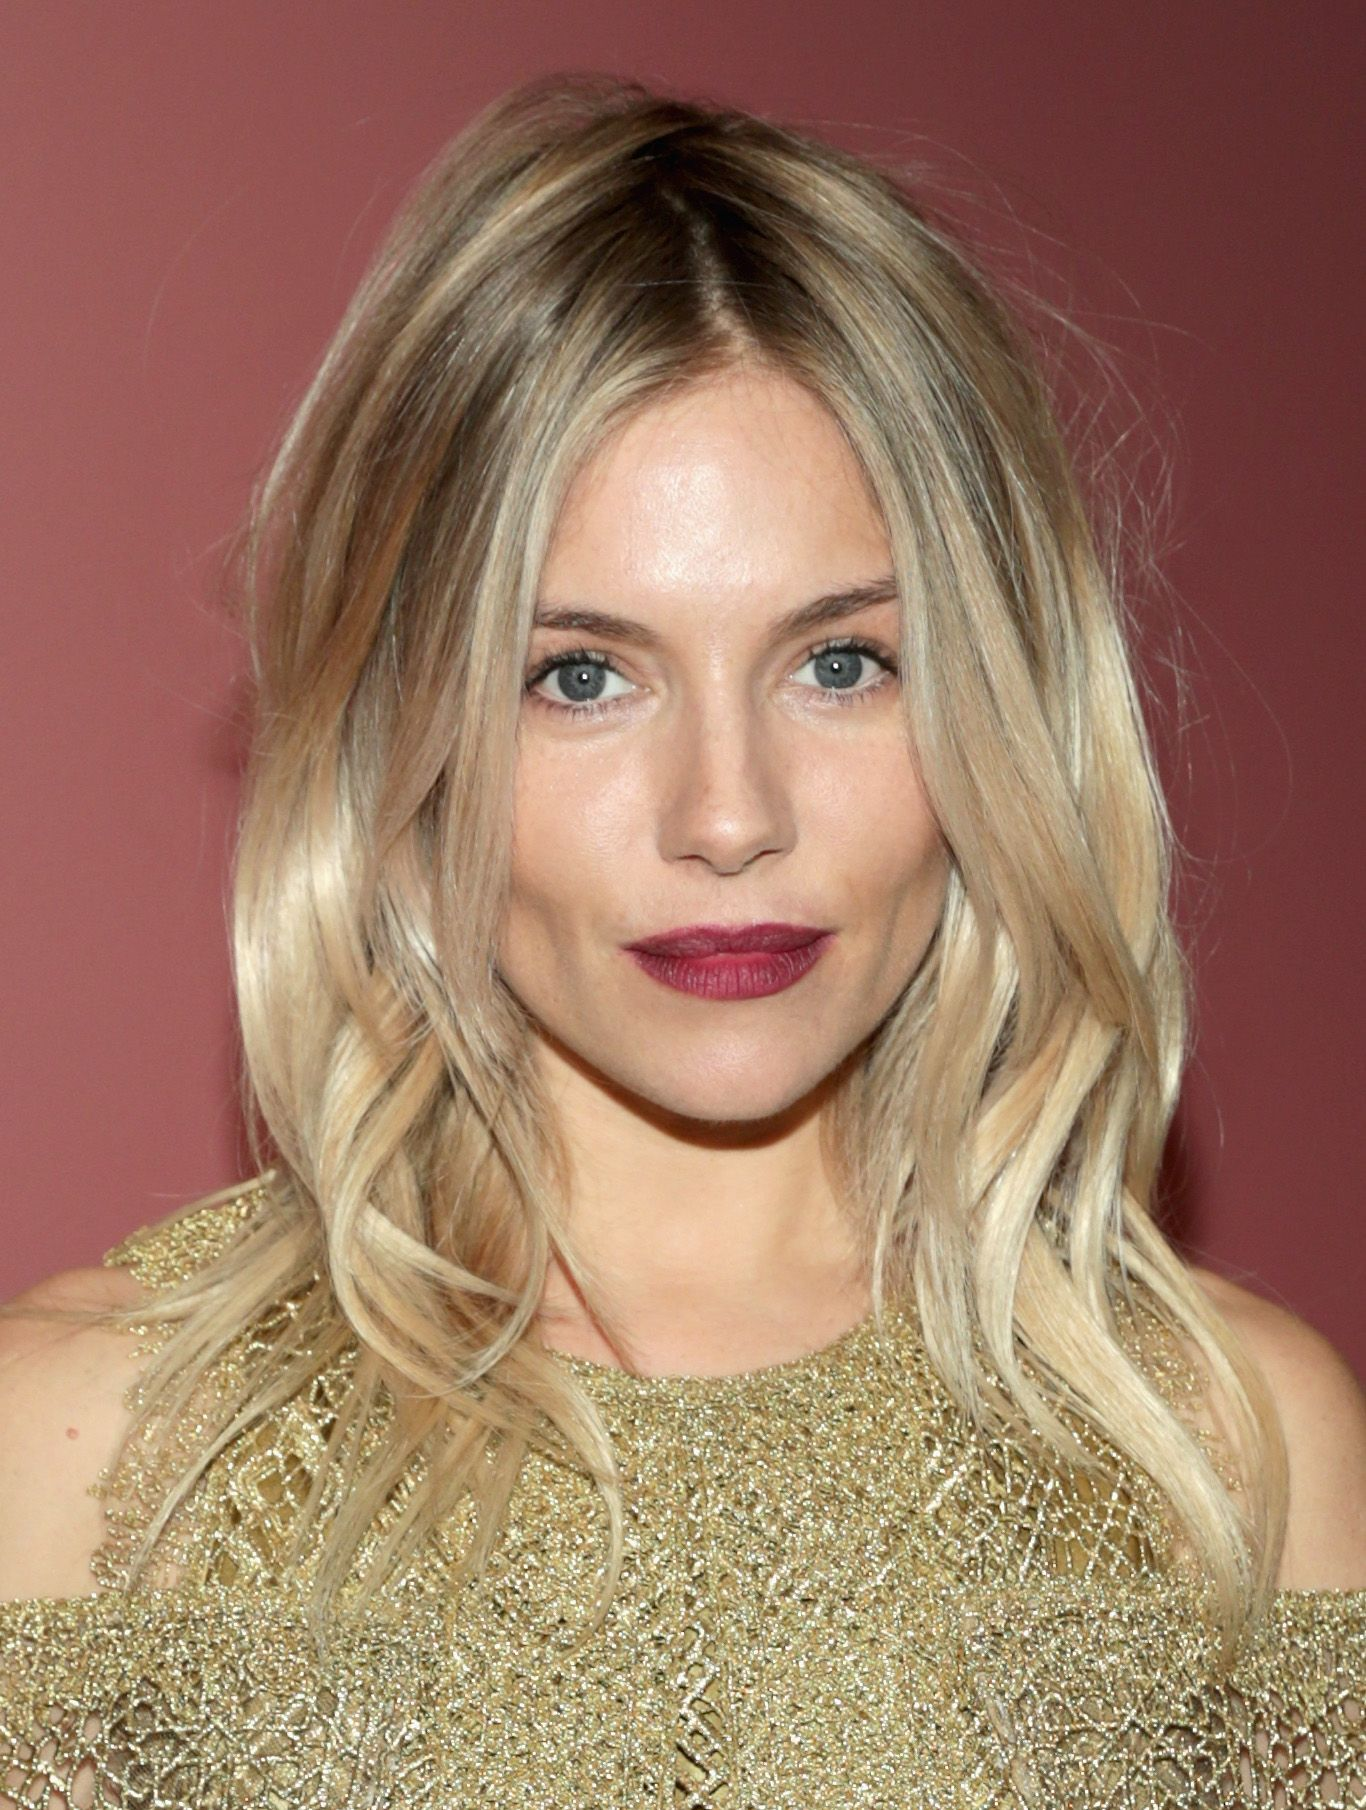 24 Blonde hair colours - From ash to dark blonde - Here\'s what every ...